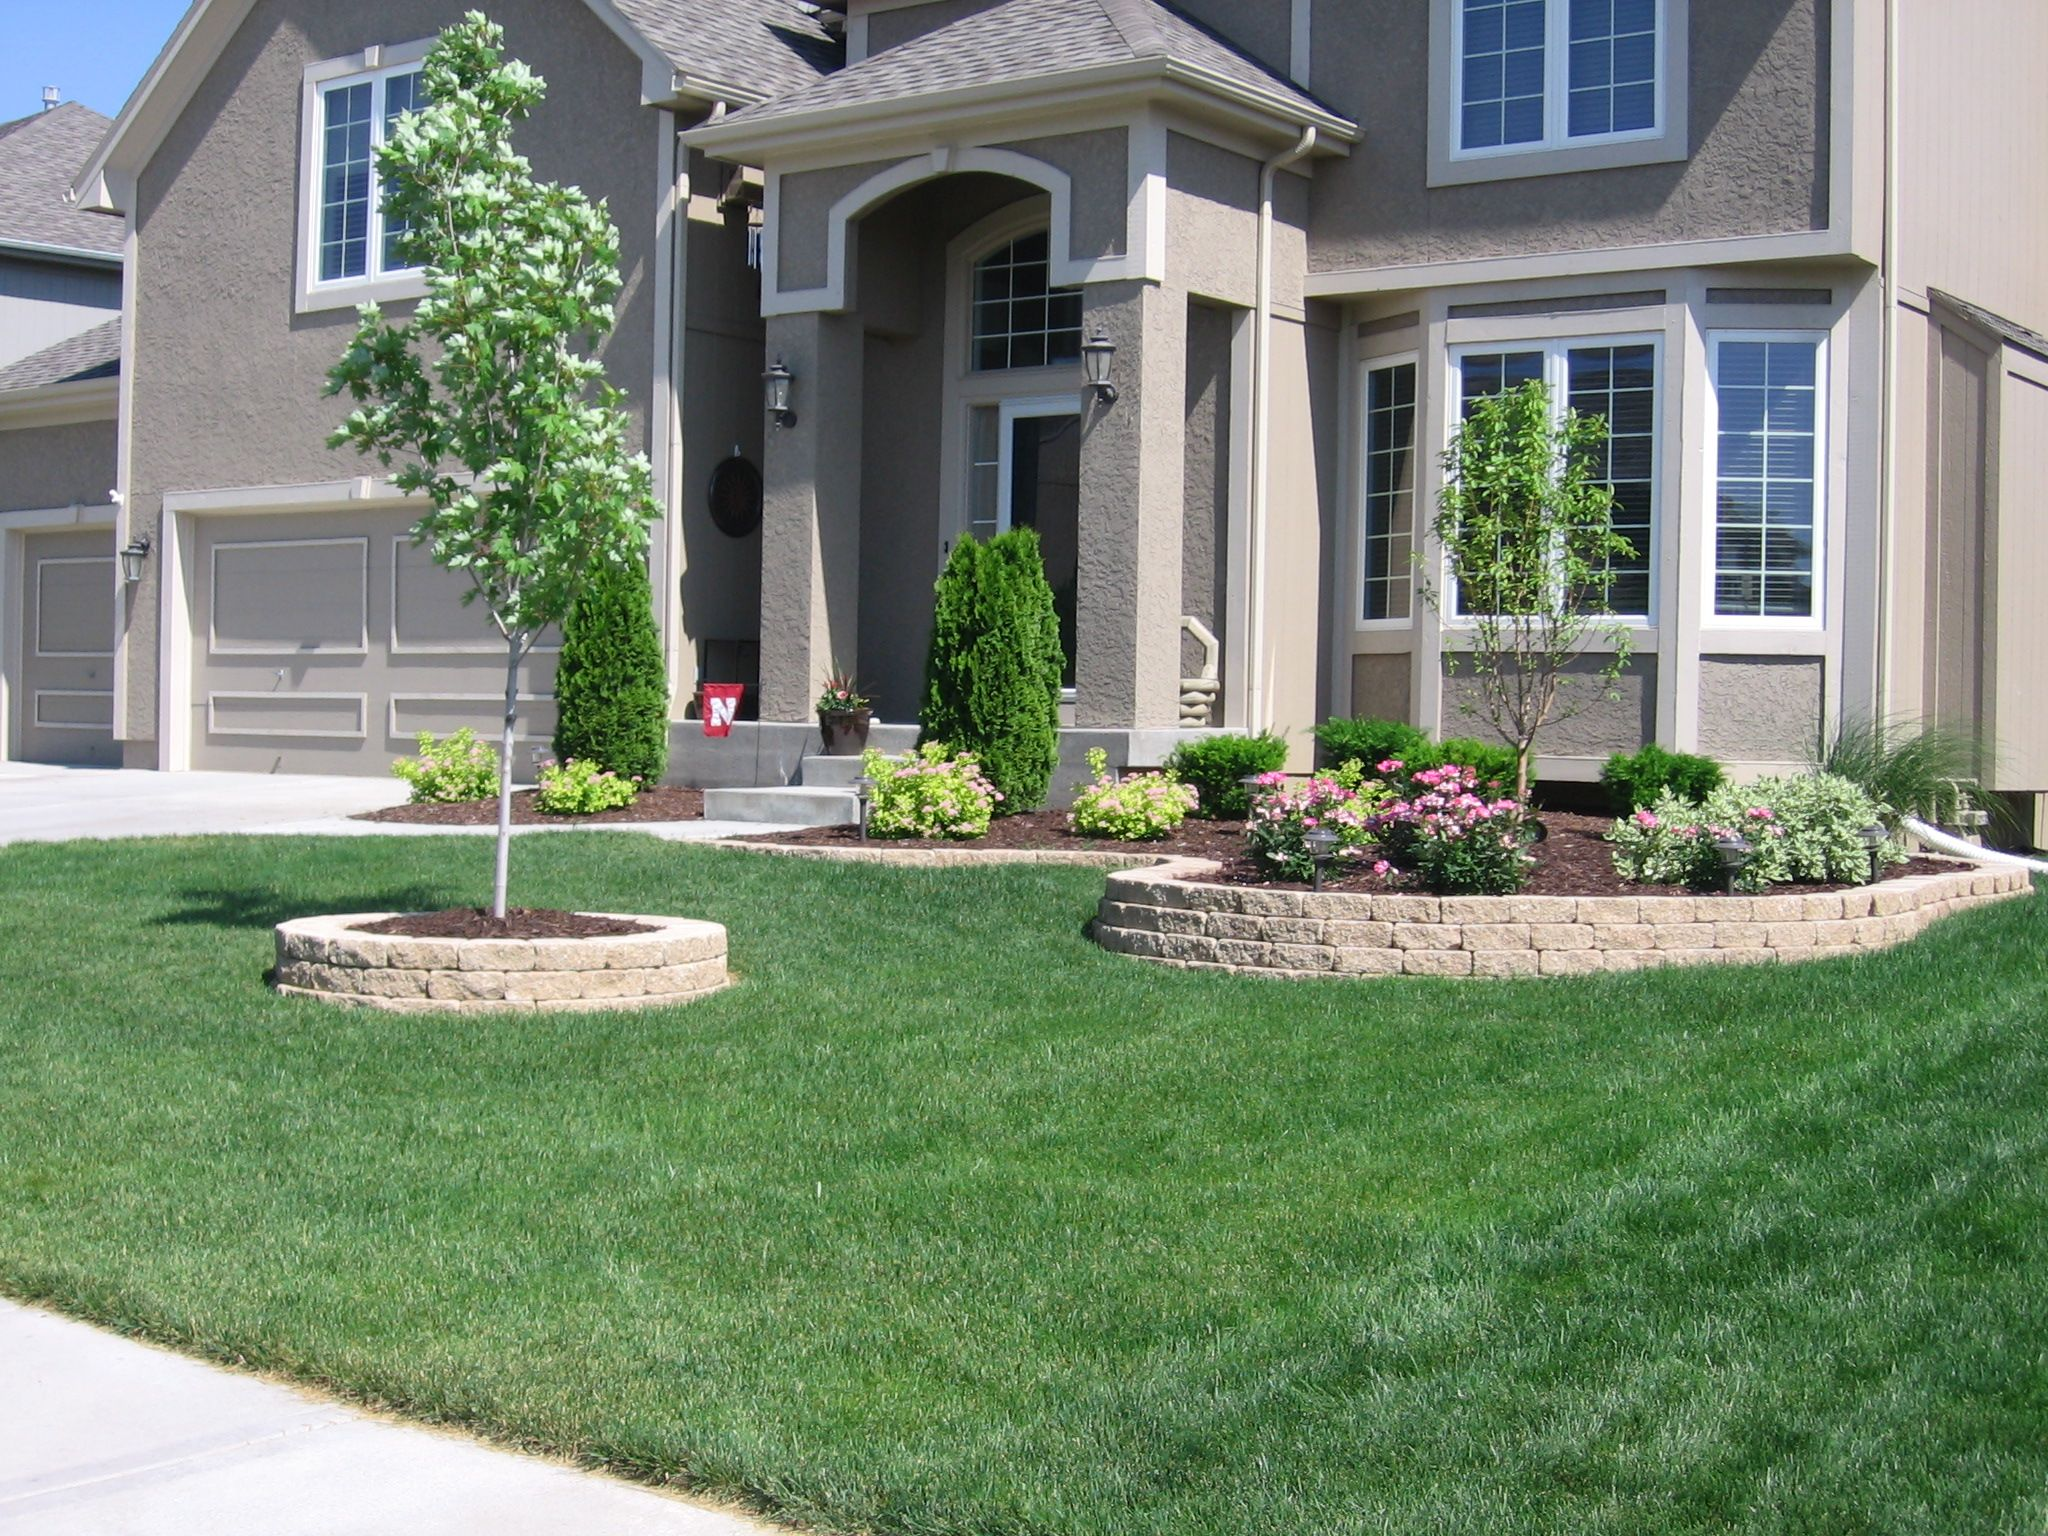 Home Landscaping Is It Different Than Other Landscaping That